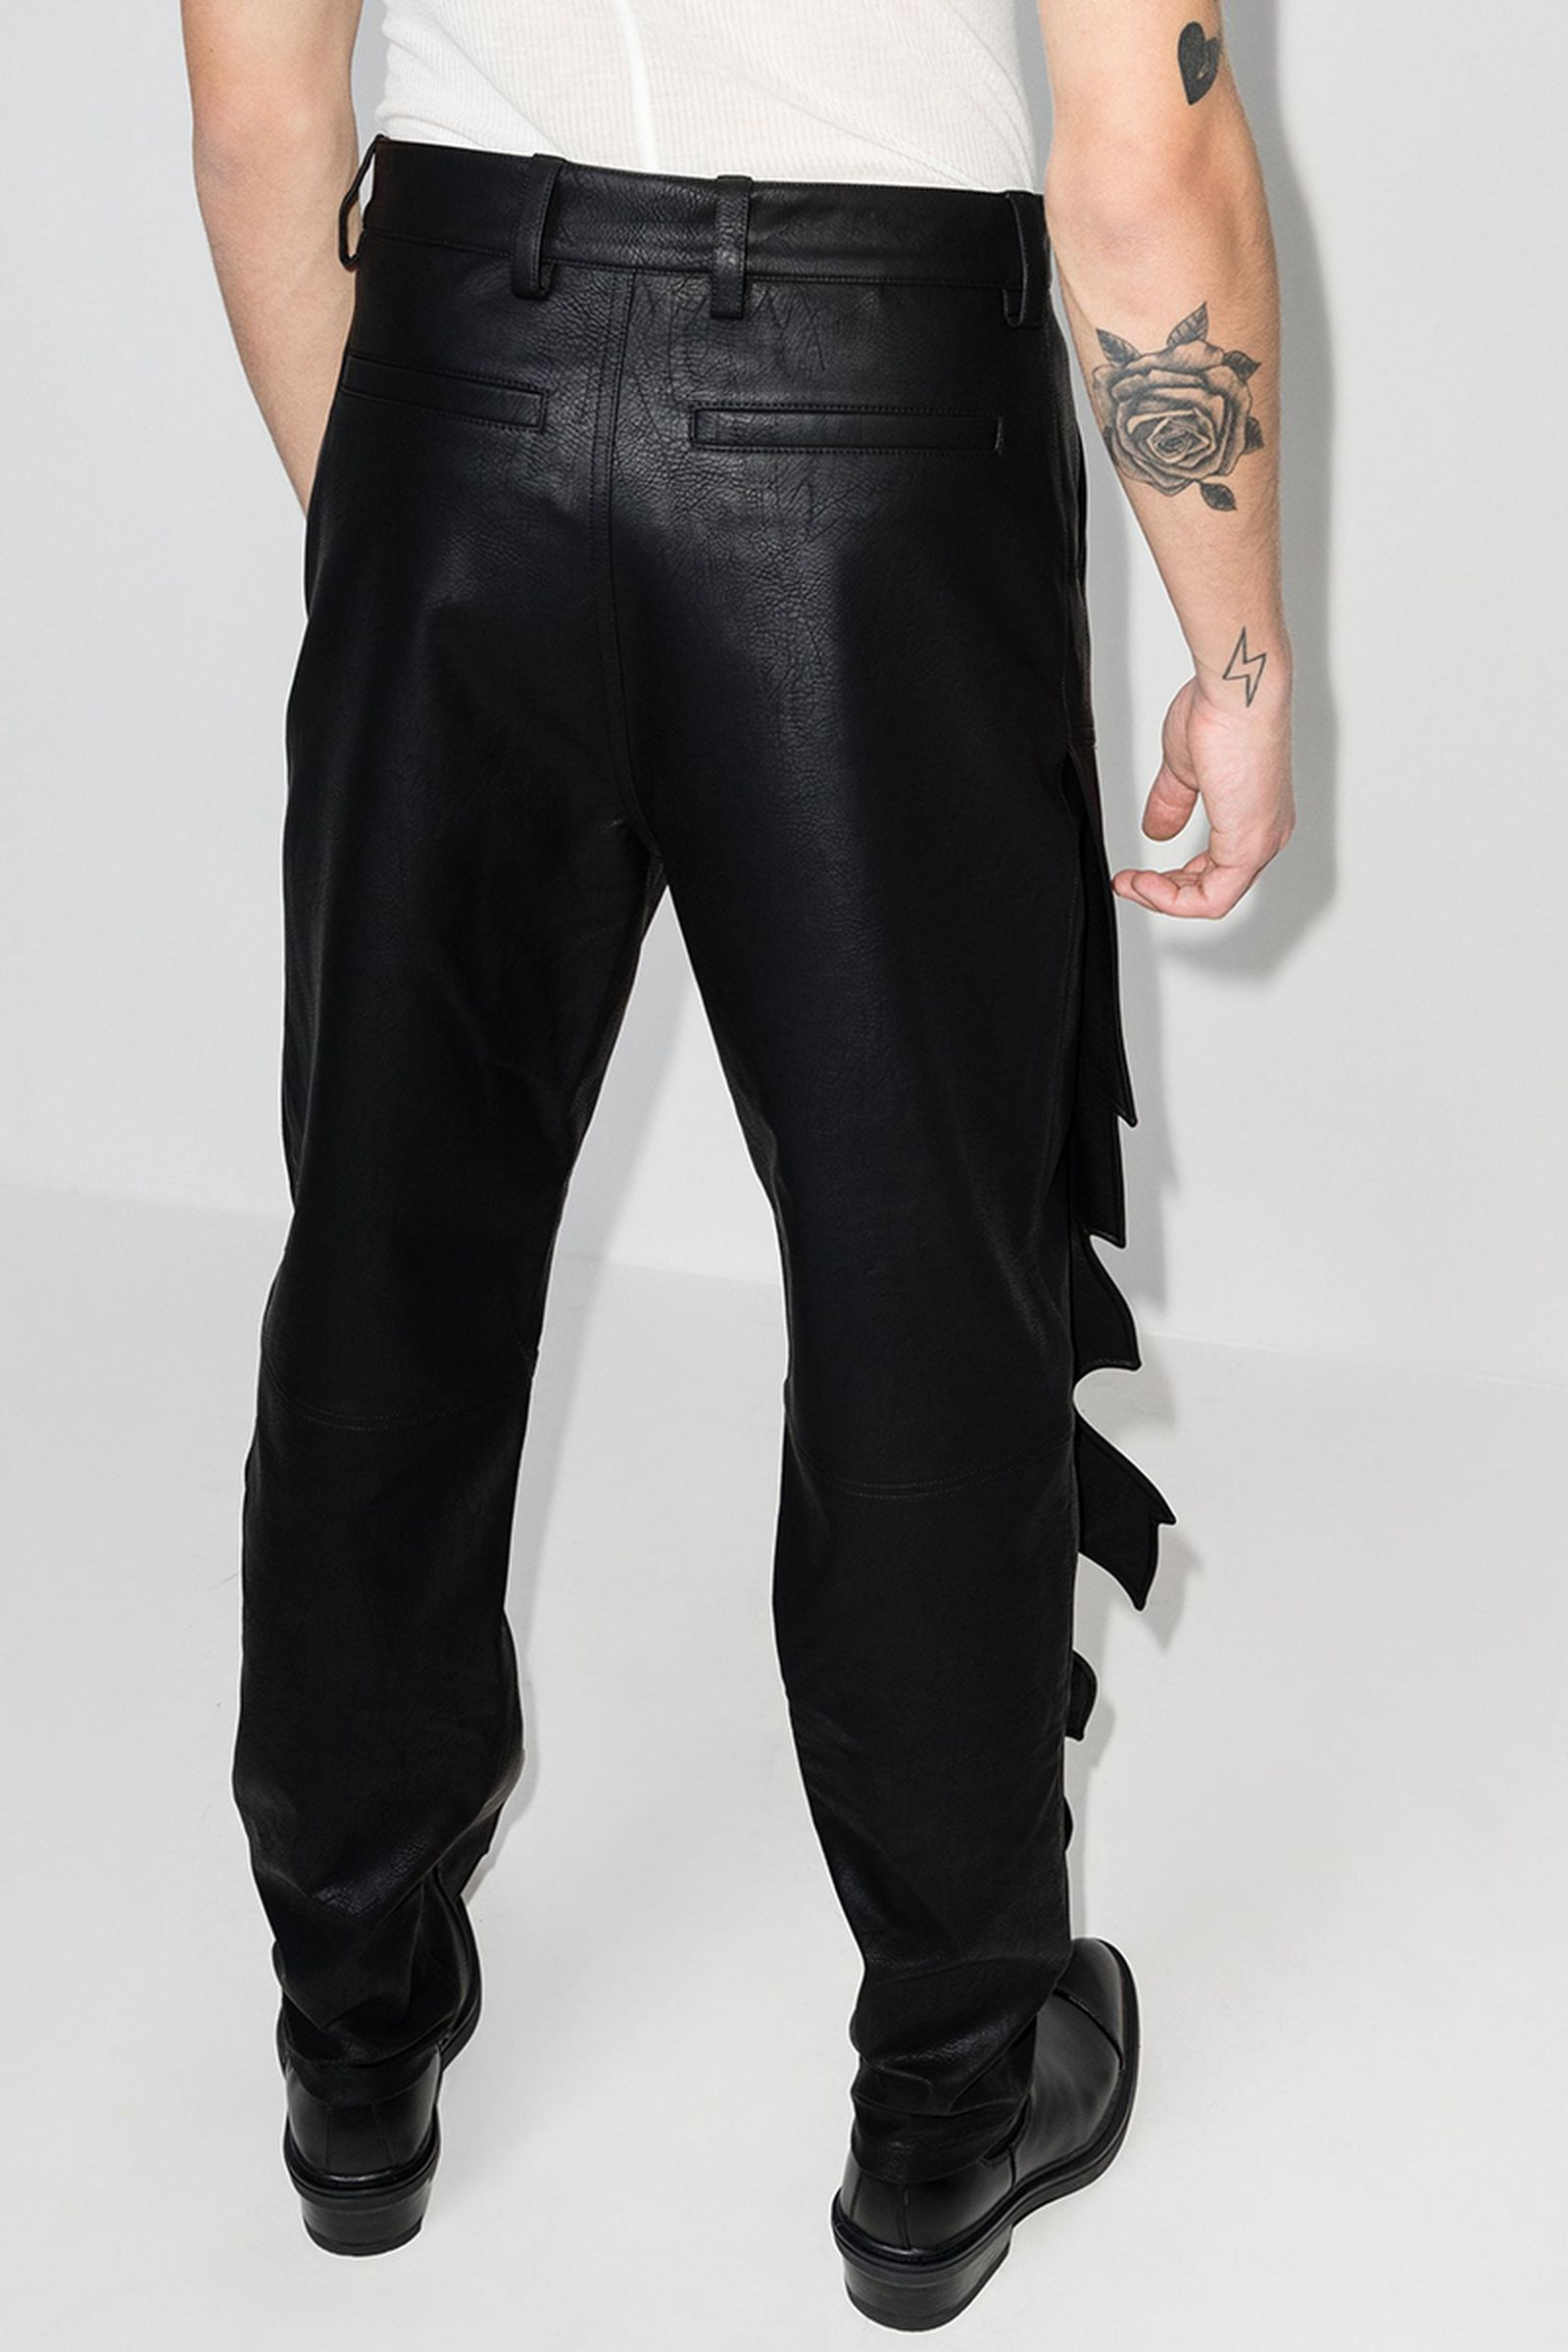 y-project-faux-leather-flame-trousers- (2)